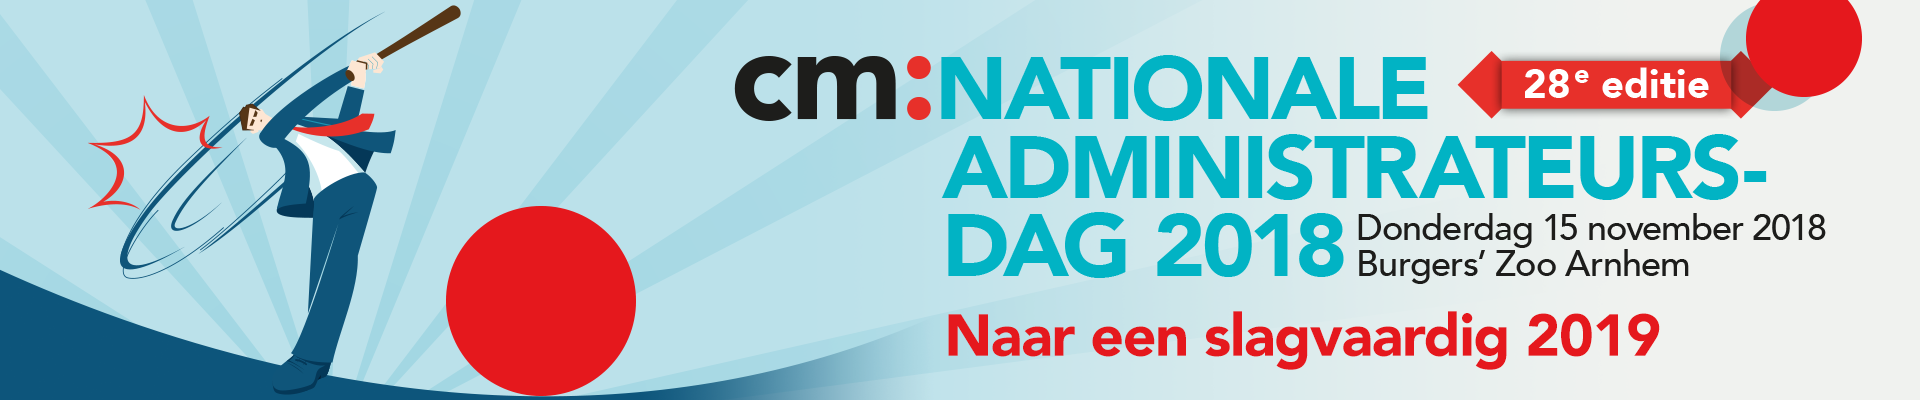 cm: Nationale Administrateursdag 2018